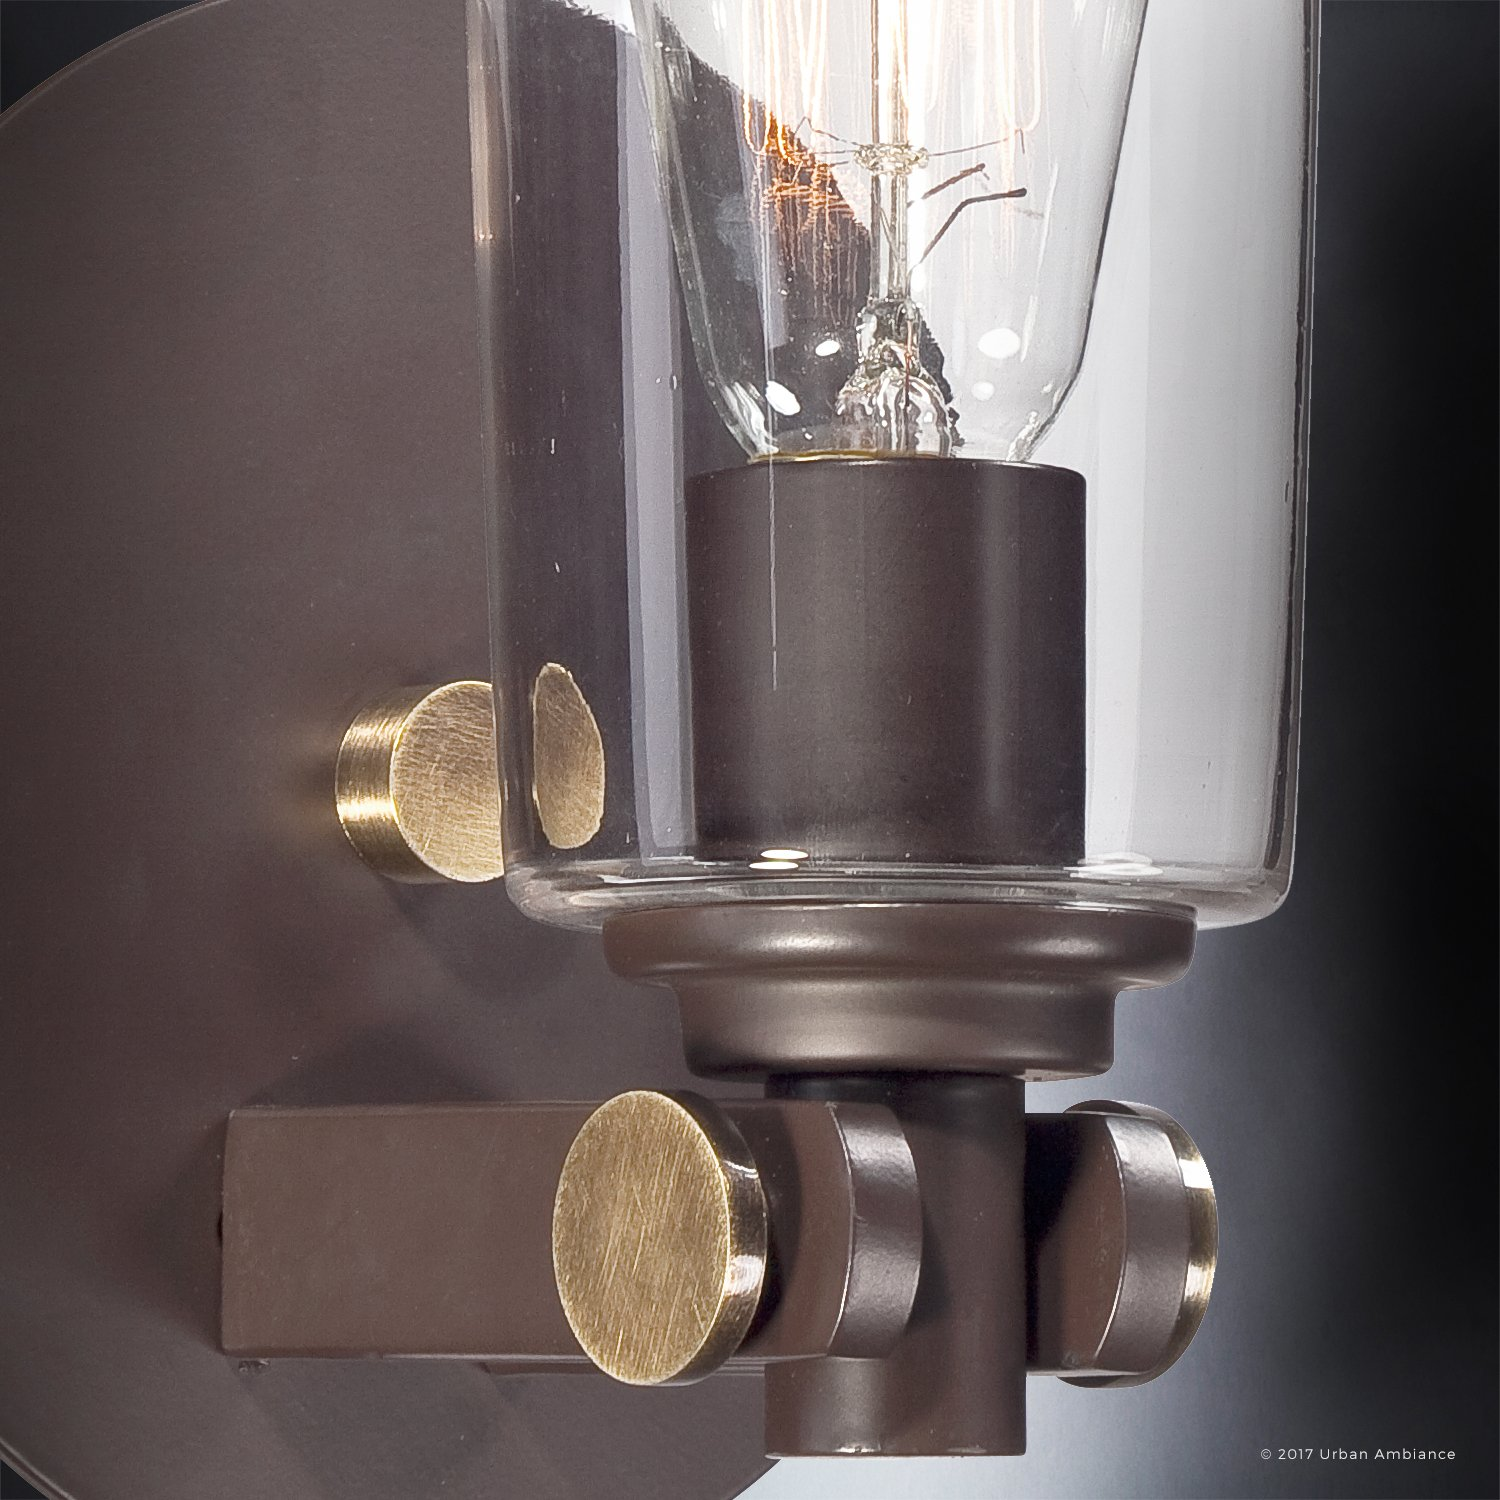 Luxury Vintage Indoor Wall Light, Small Size: 11''H x 6.5''W, with Casual Style Elements, Retro Design, Elegant Estate Bronze Finish and Clear Glass, Includes Edison Bulb, UQL2690 by Urban Ambiance by Urban Ambiance (Image #6)